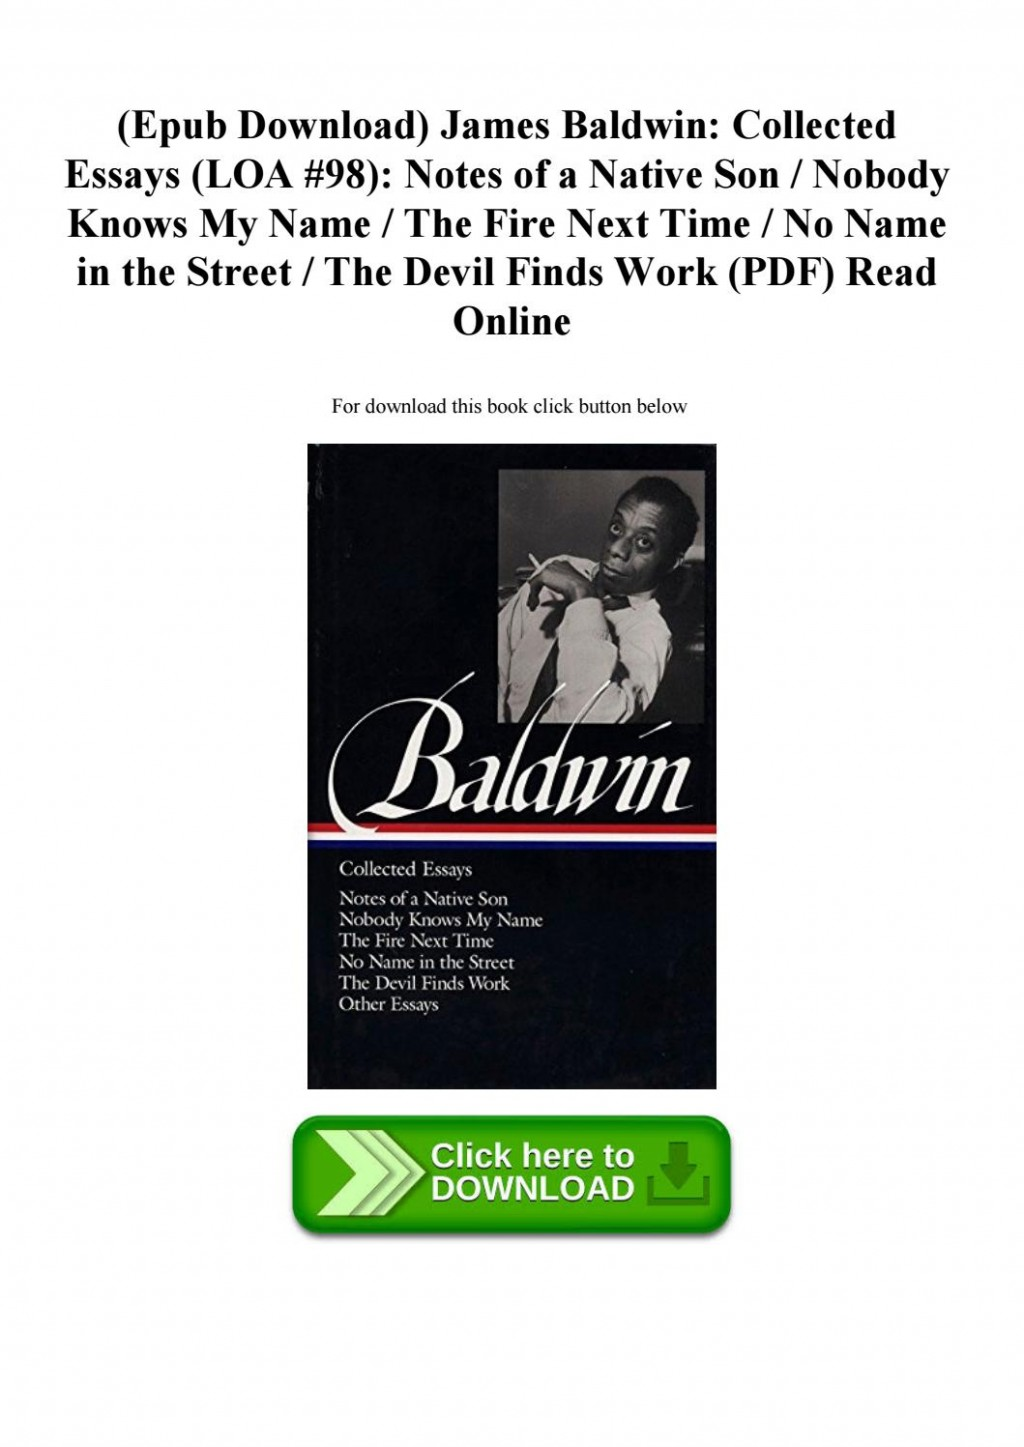 003 James Baldwin Collected Essays Essay Example Page 1 Wondrous Google Books Pdf Table Of Contents Large